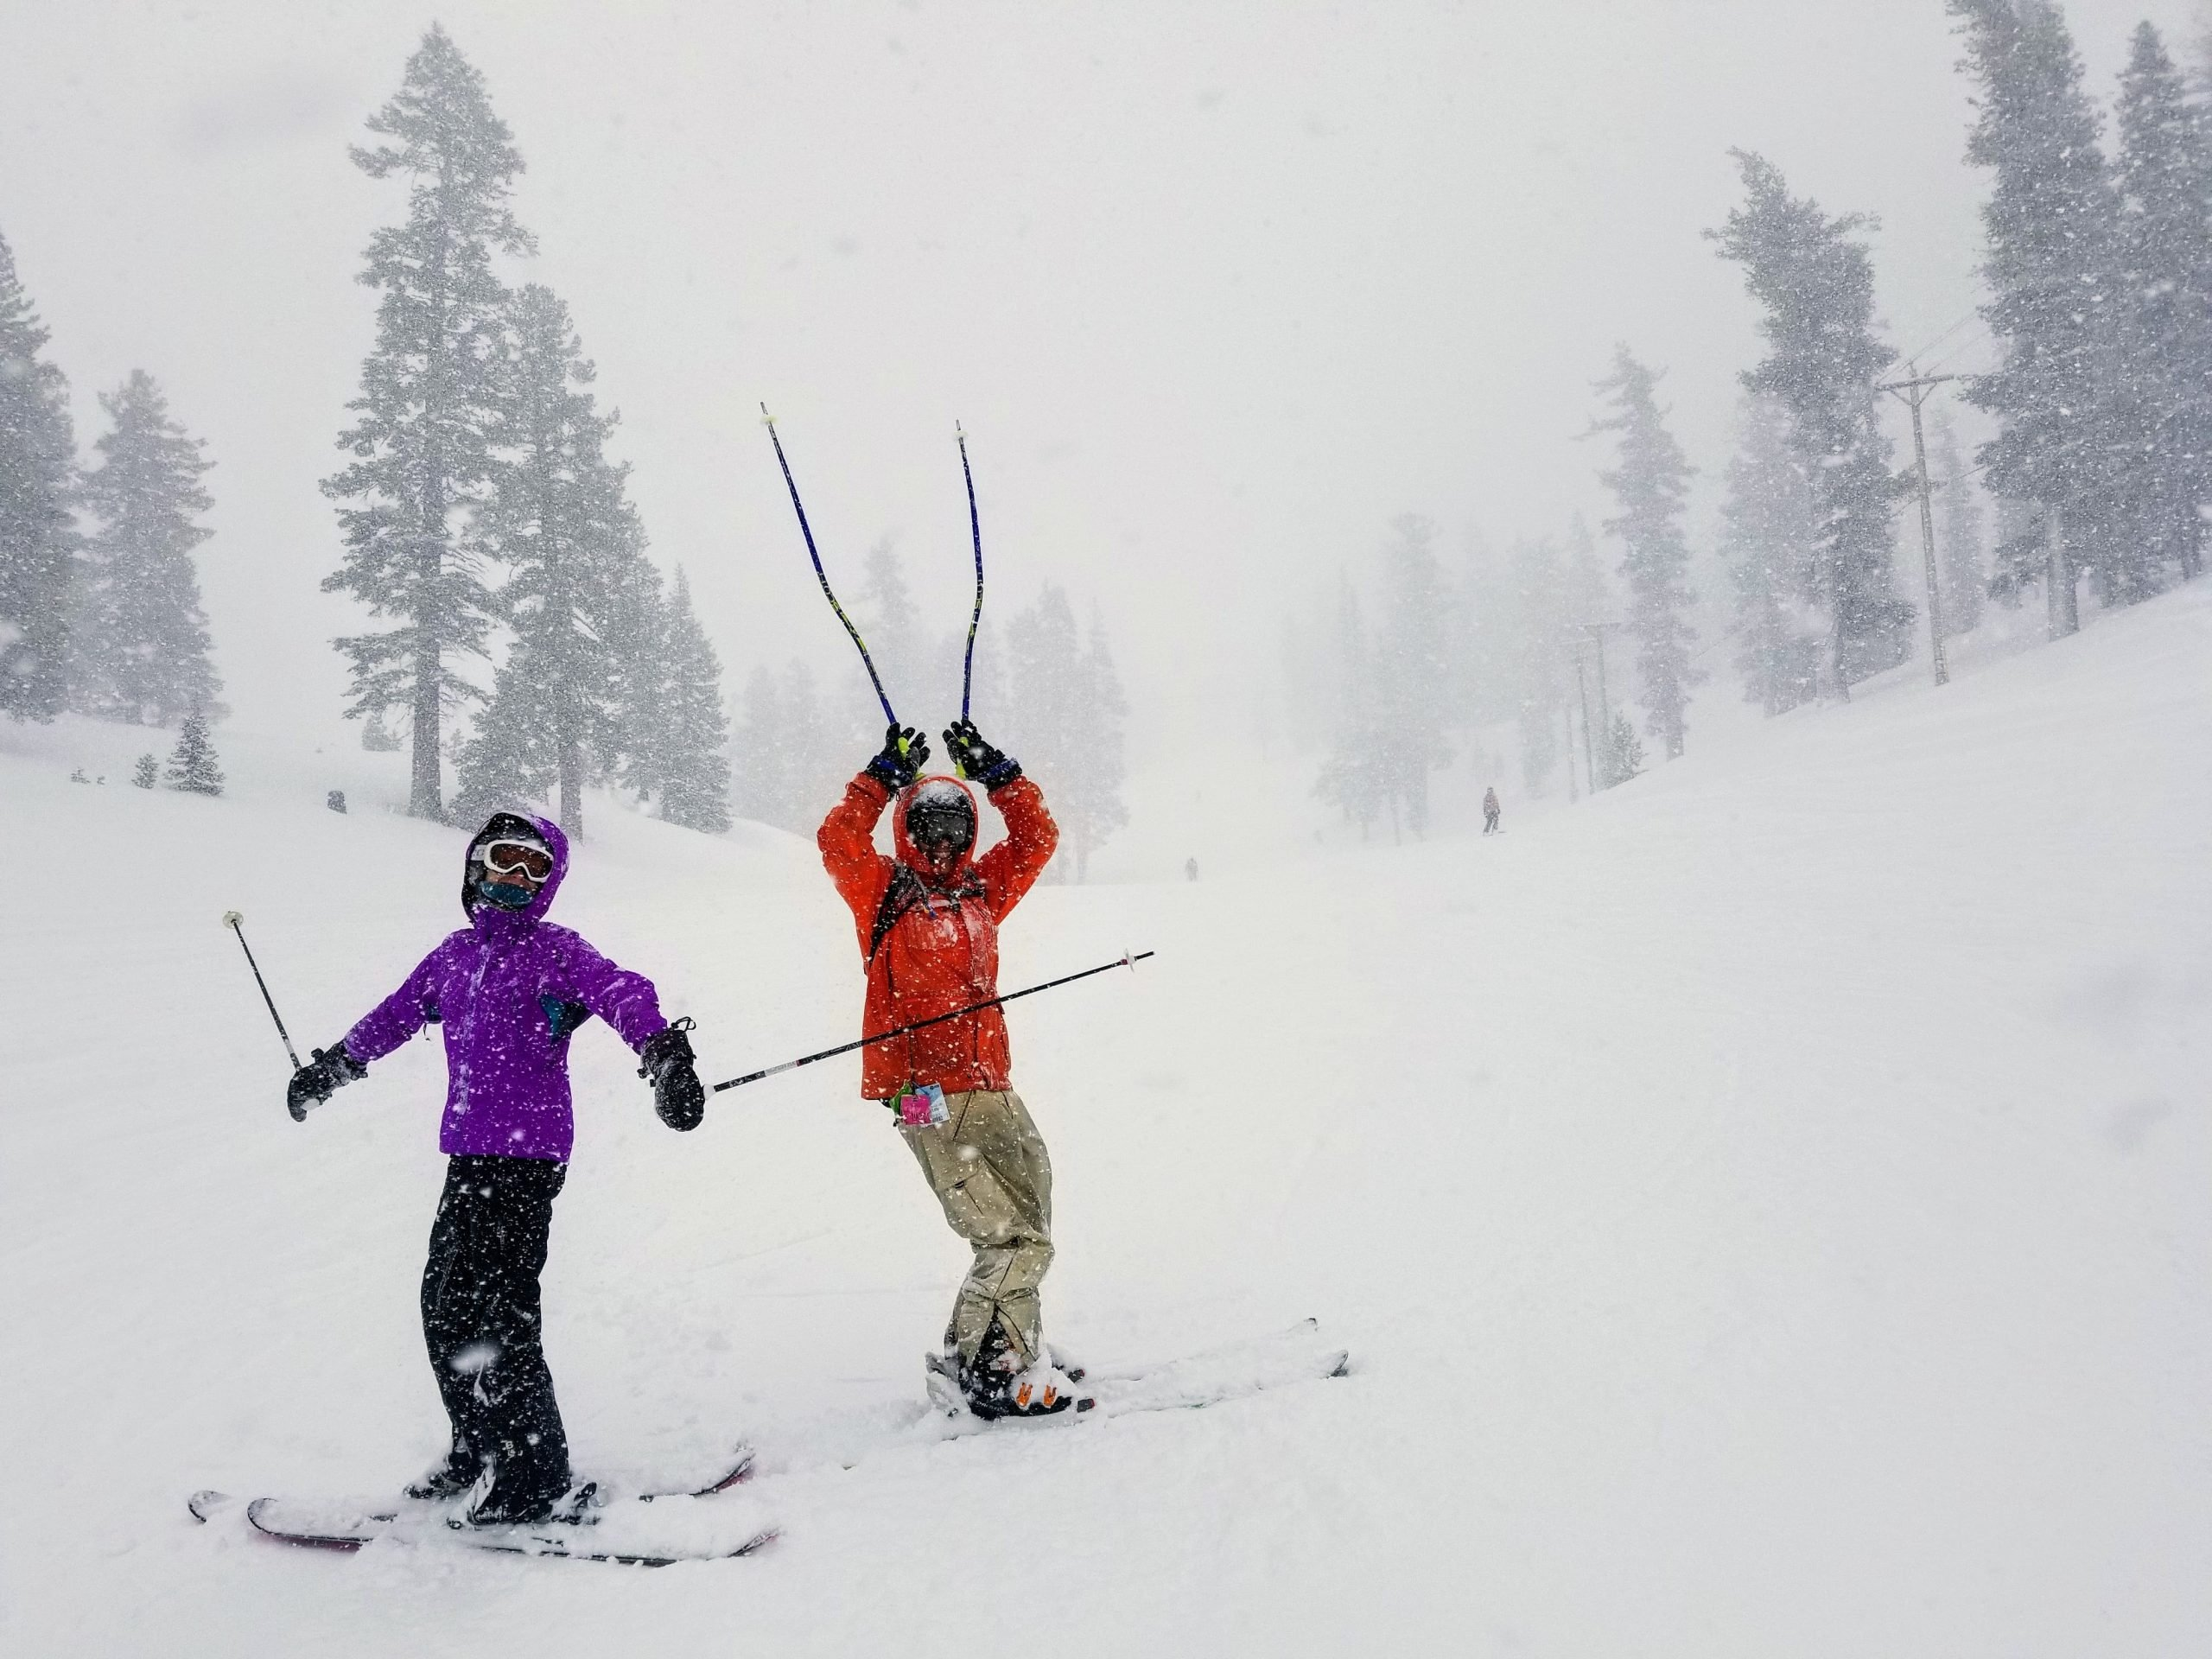 Two skiers in snowy weather